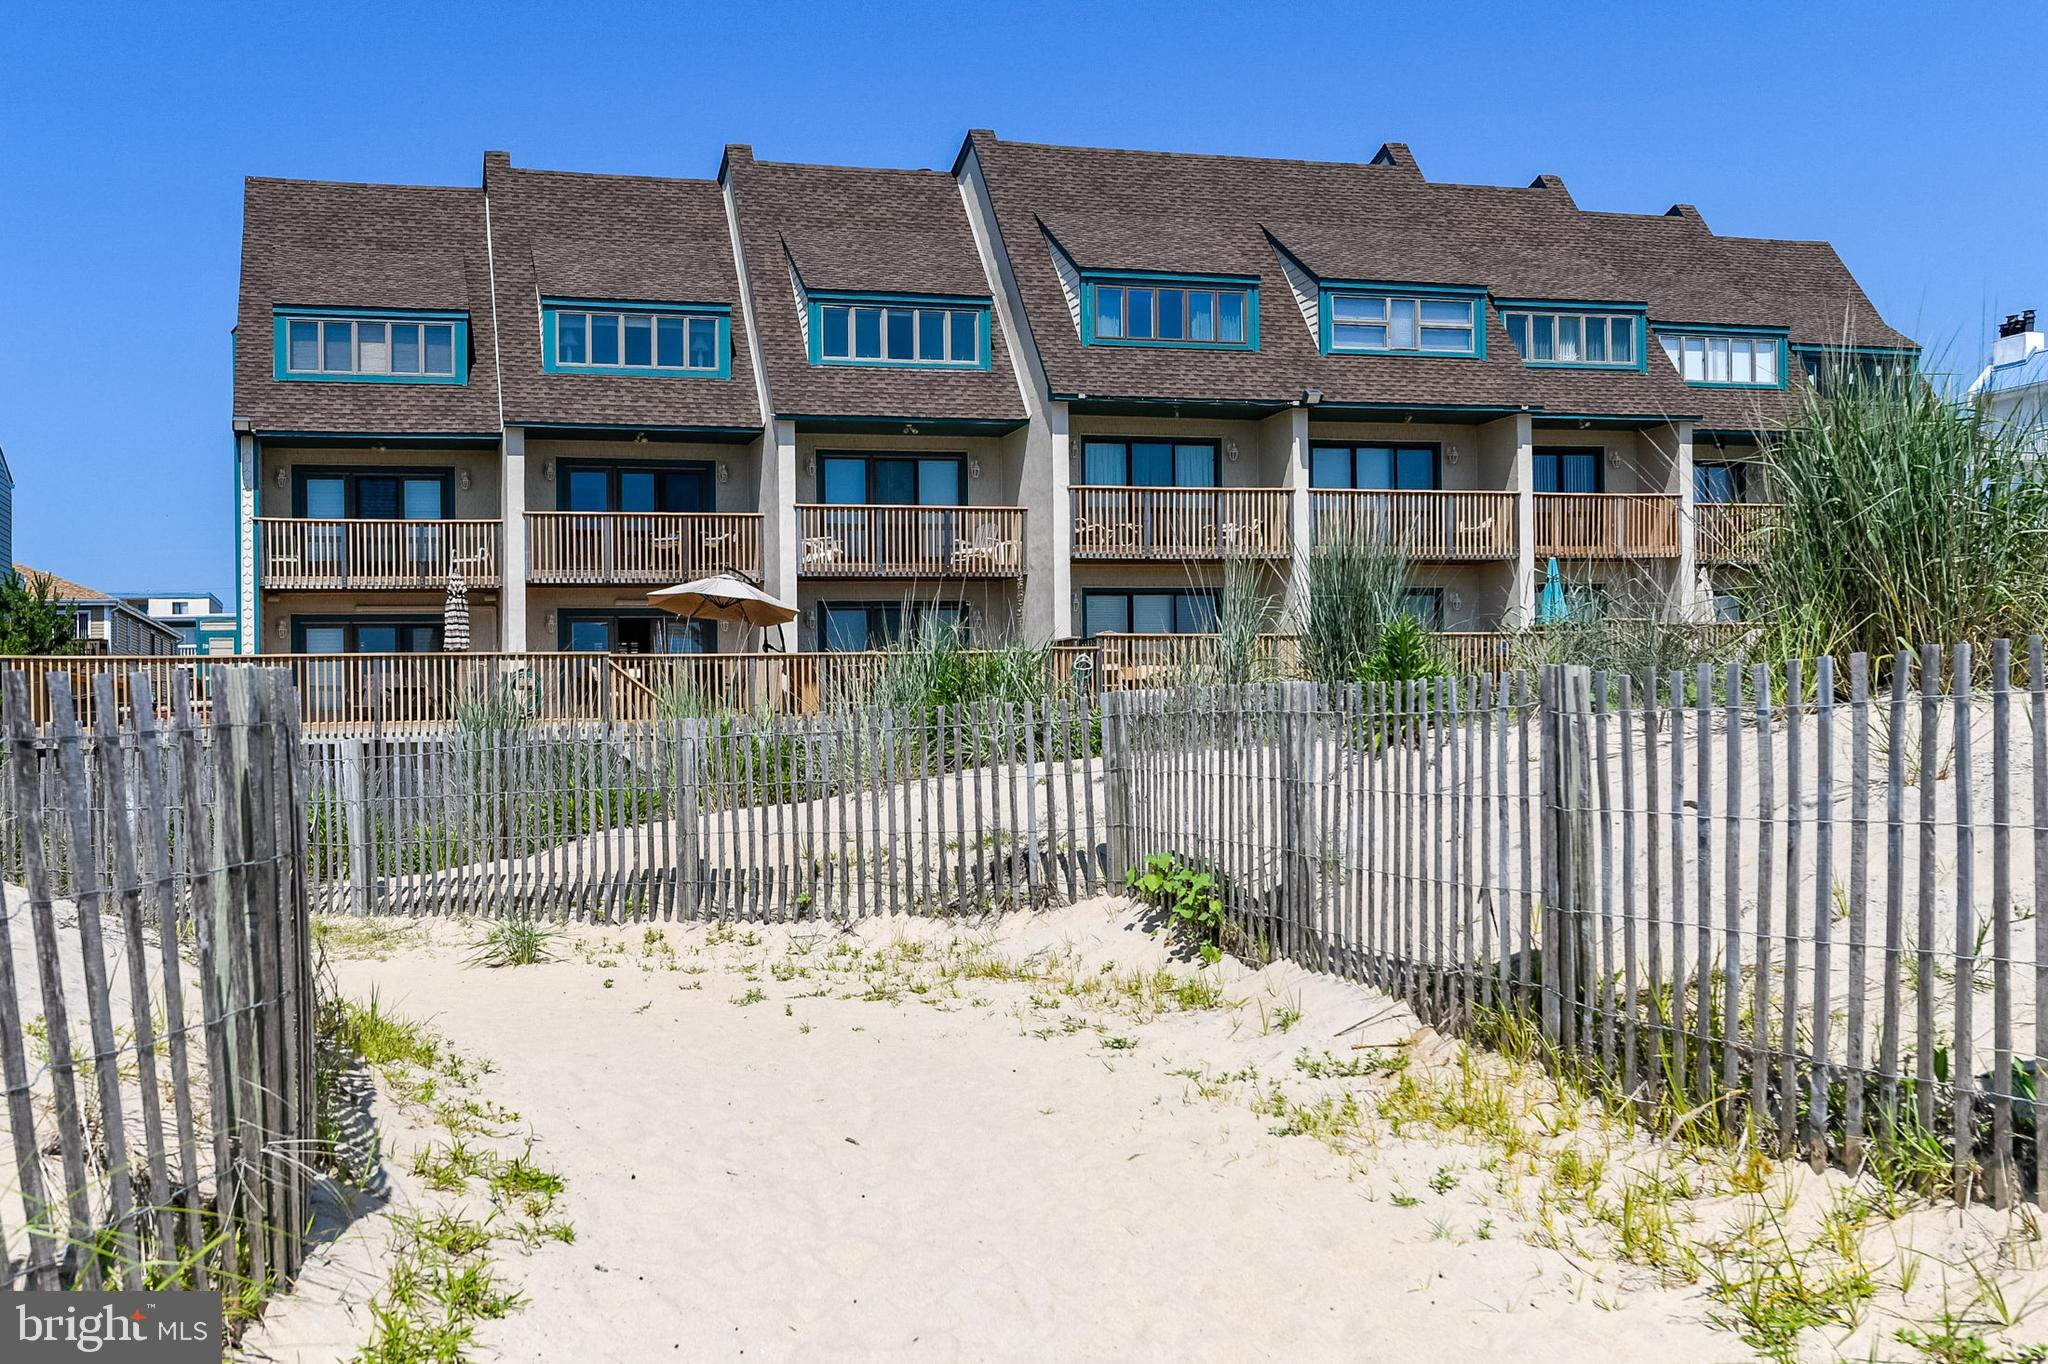 12005 WIGHT STREET 2, OCEAN CITY, MD 21842